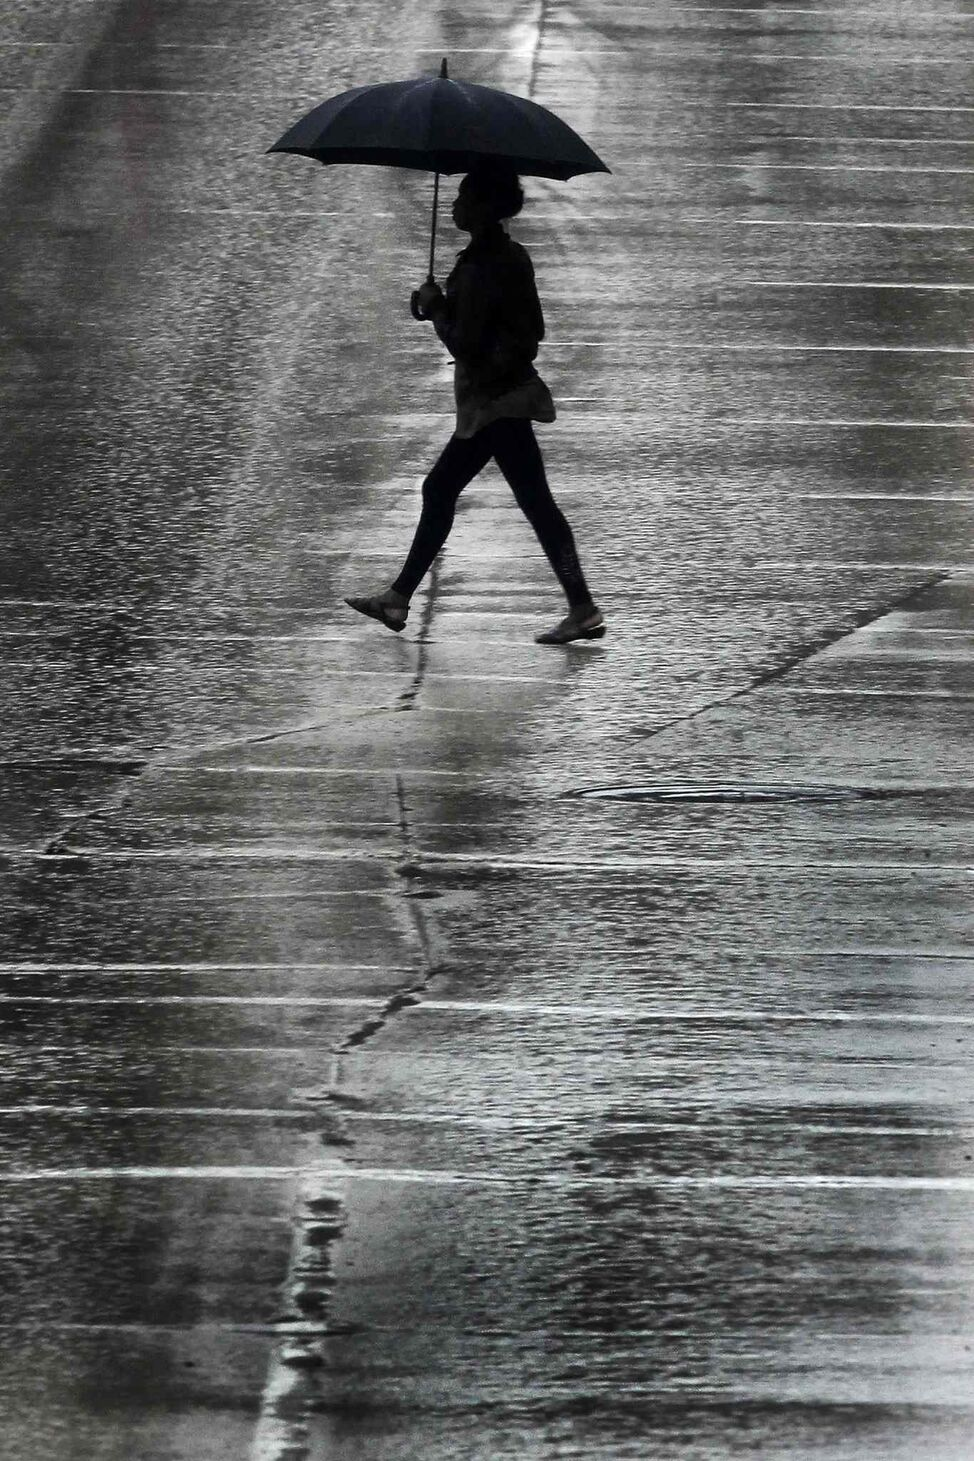 A pedestrian crosses Portage Avenue during a day of rainfall May 19, 2013.